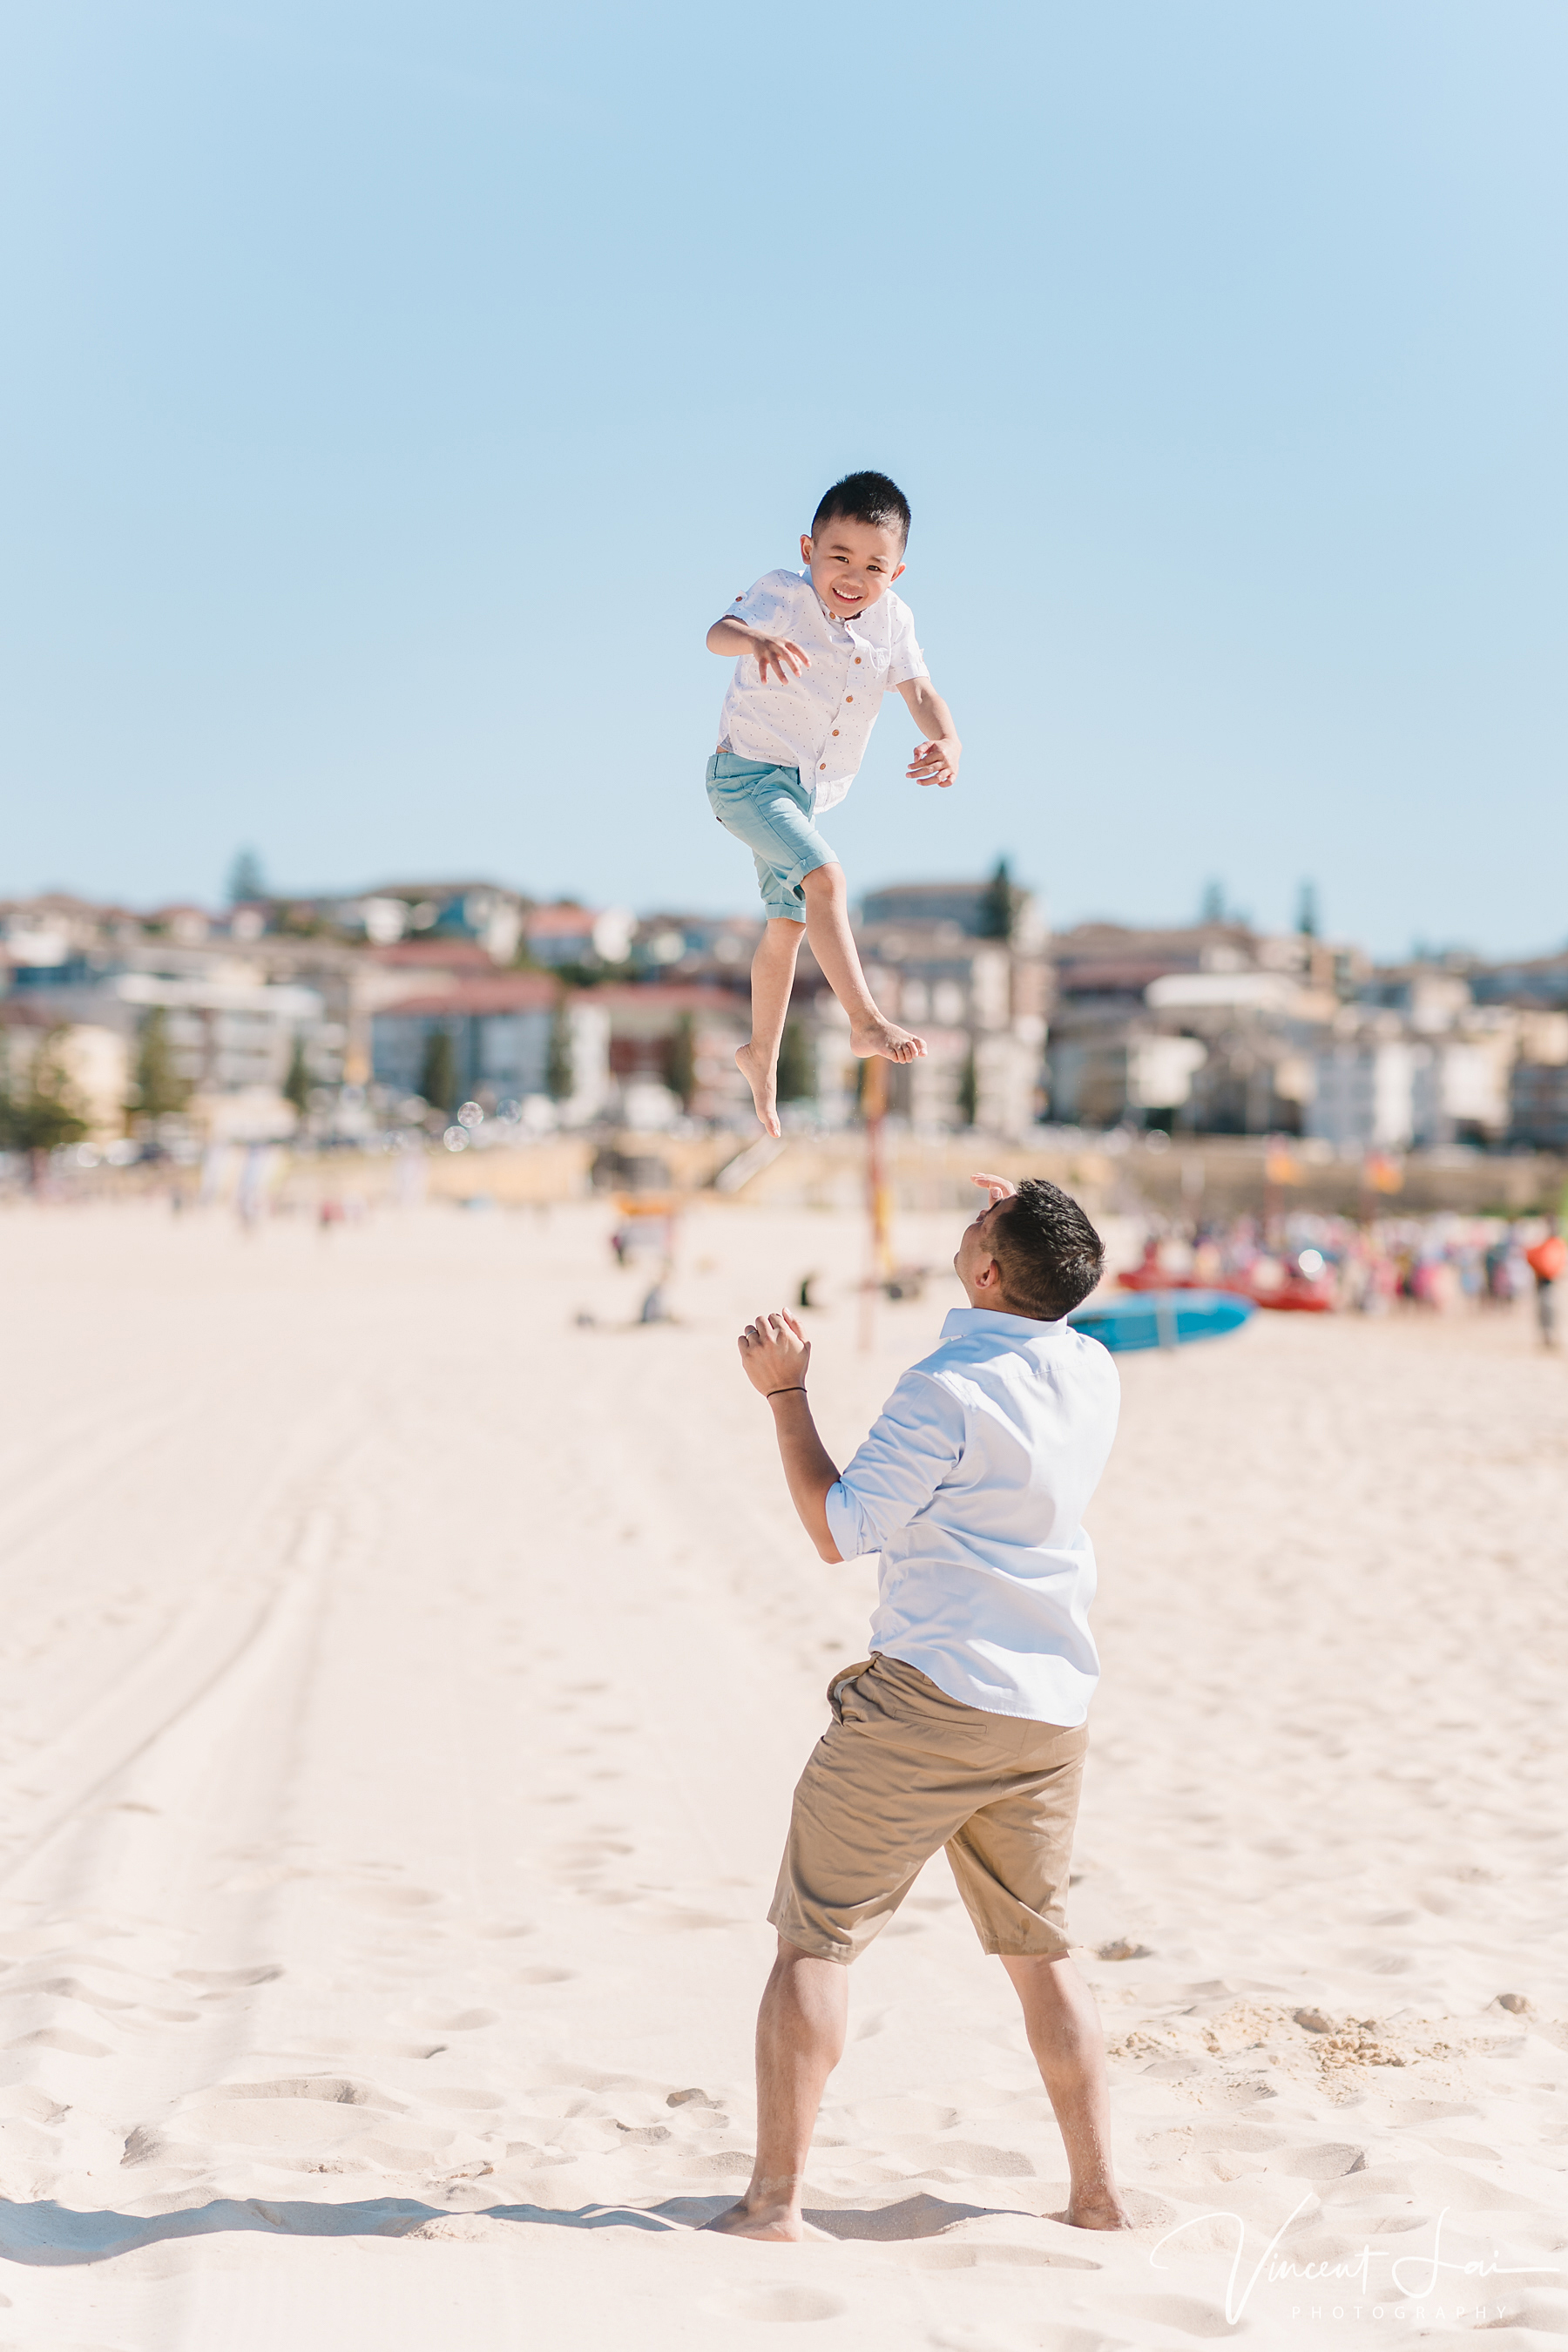 Family Photo Session at Maroubra Beach